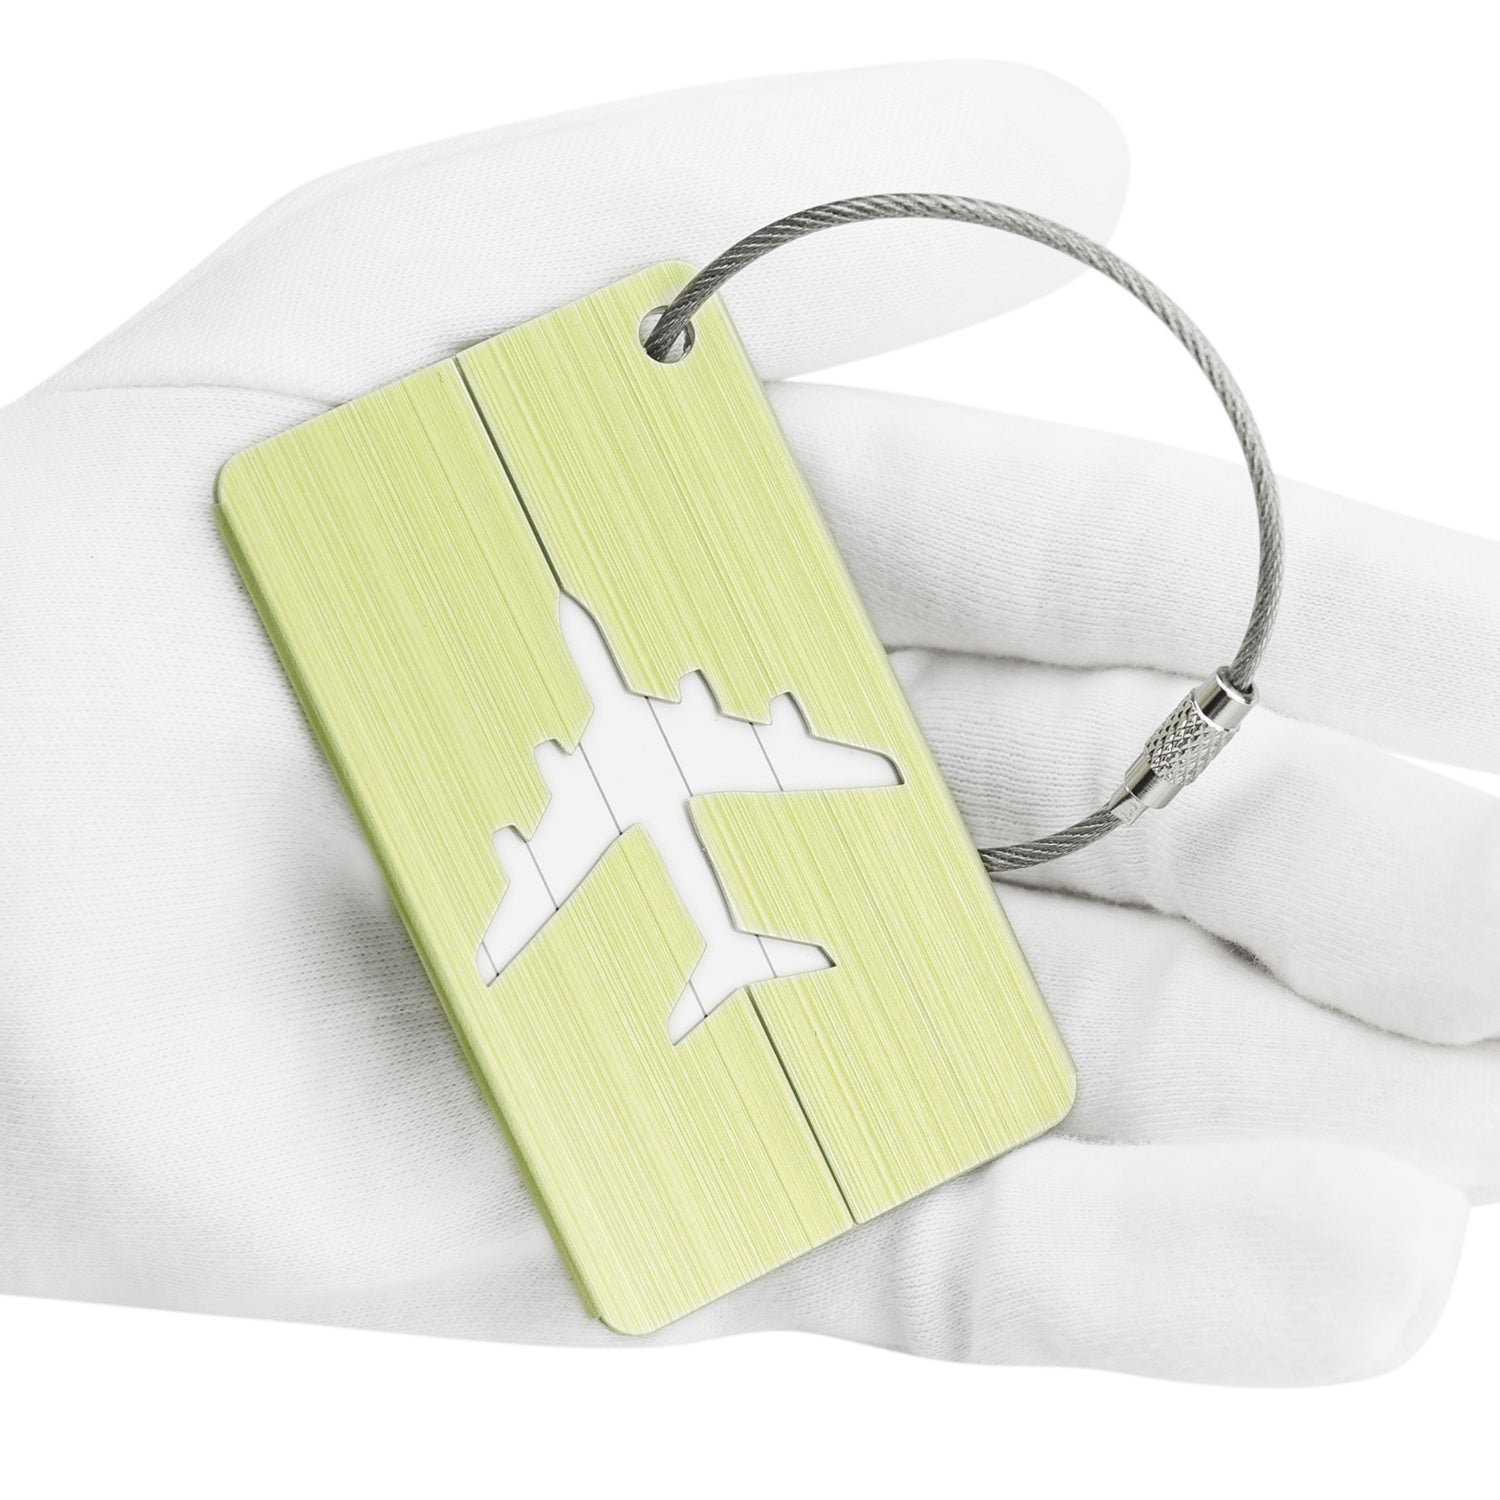 6 Yellow Hollow Airplane Pattern Aluminum Luggage Tags